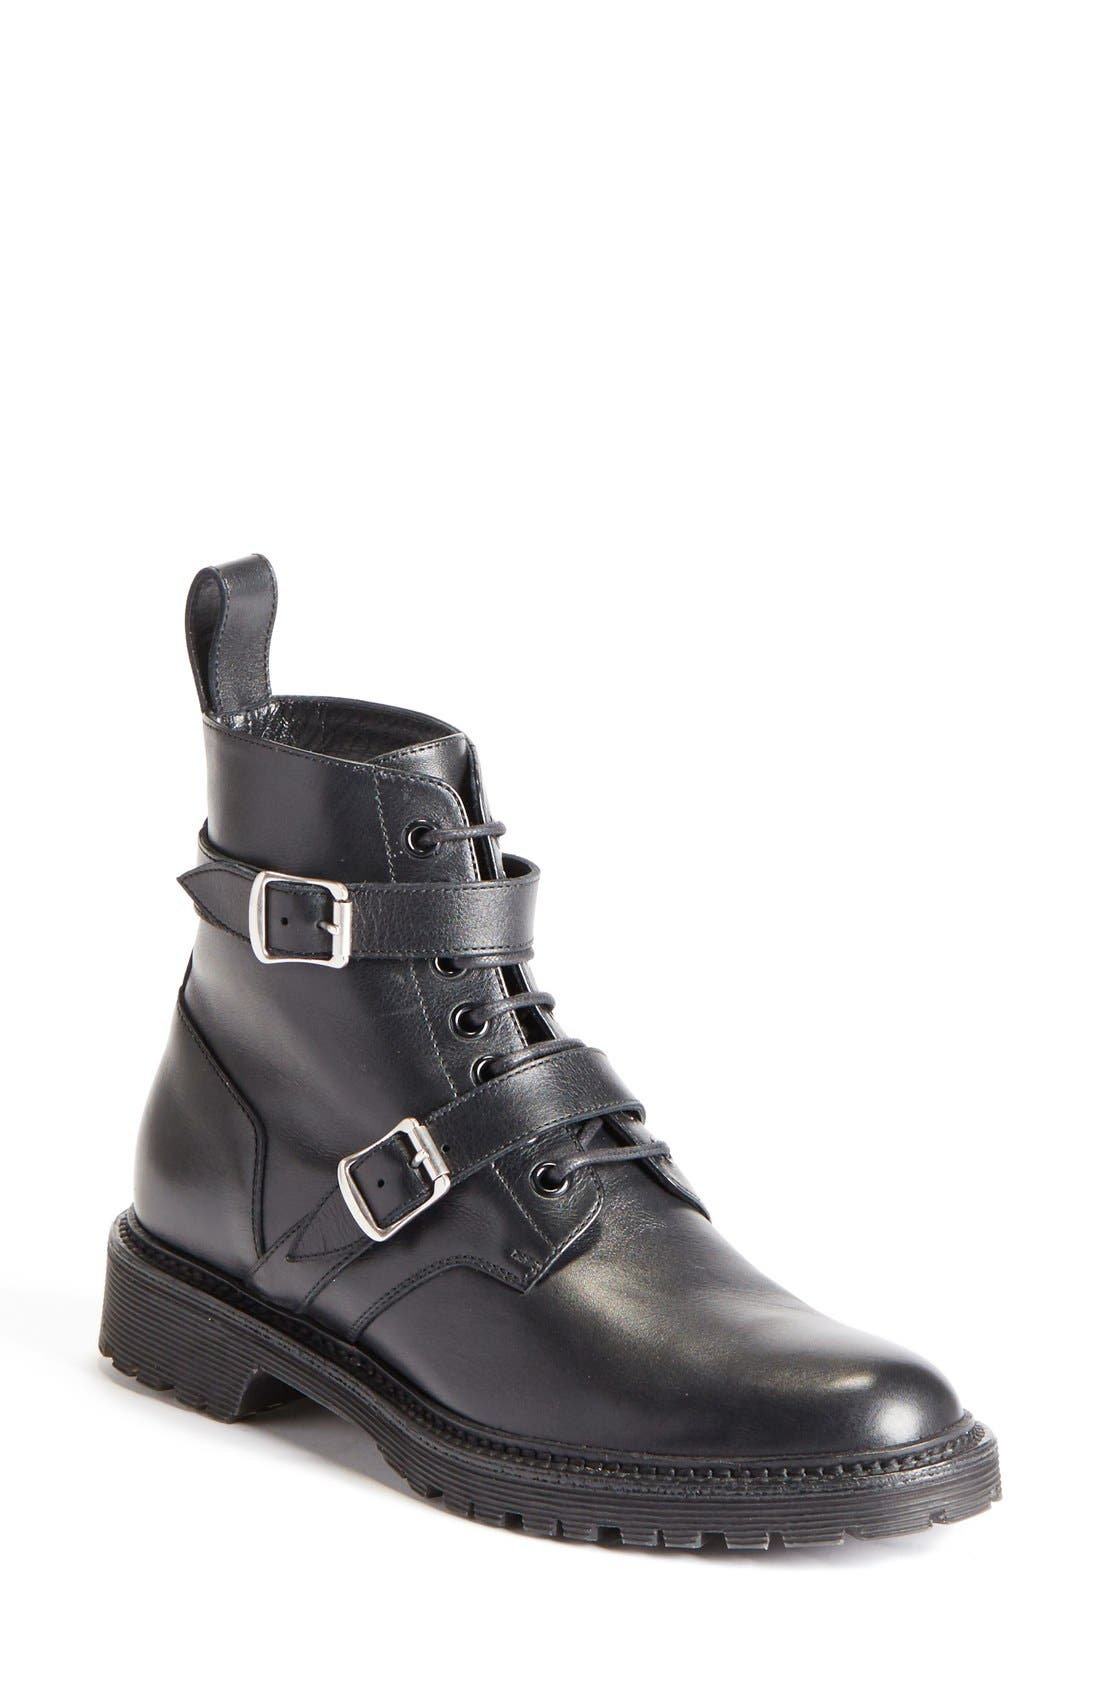 Alternate Image 1 Selected - Saint Laurent 'Army' Military Bootie (Women)